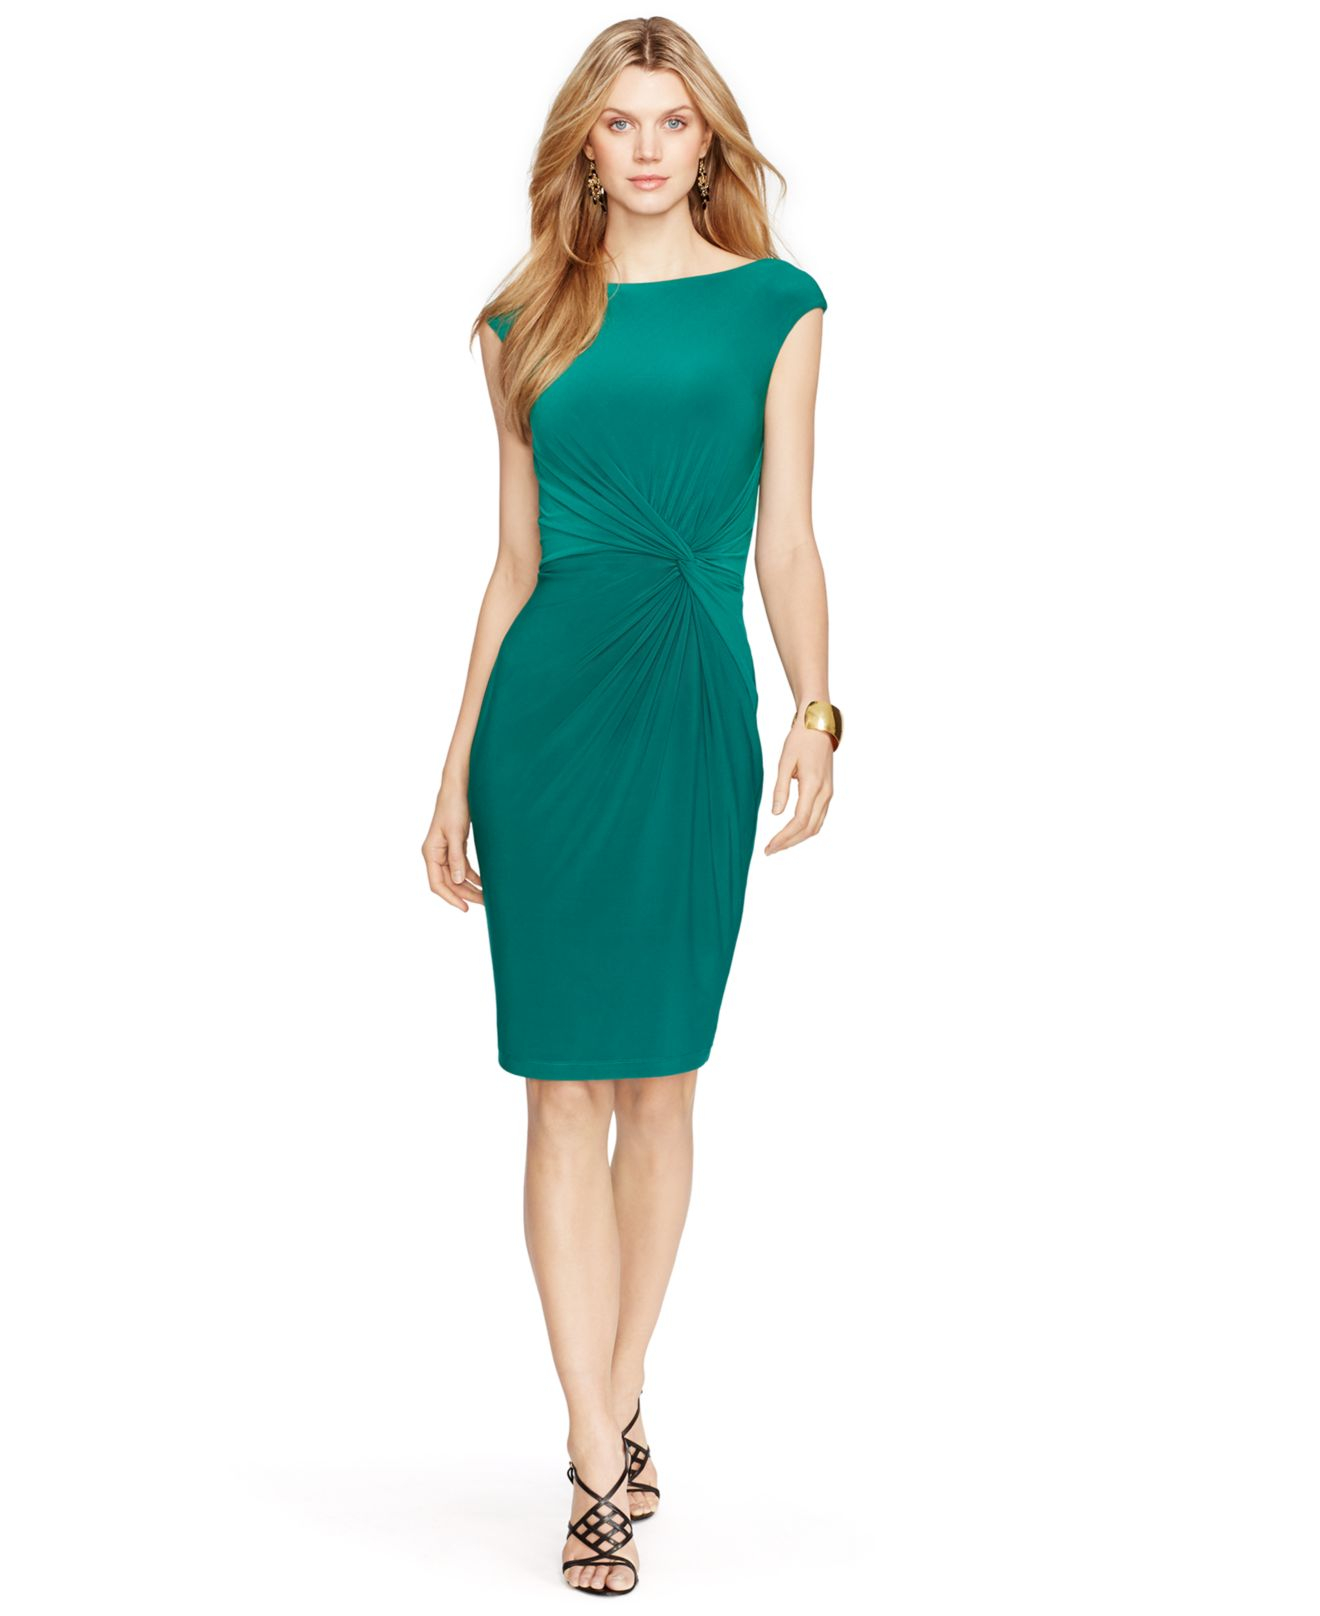 Lauren Ralph Lauren Väskor : Lauren by ralph ruched cap sleeve dress in green lyst